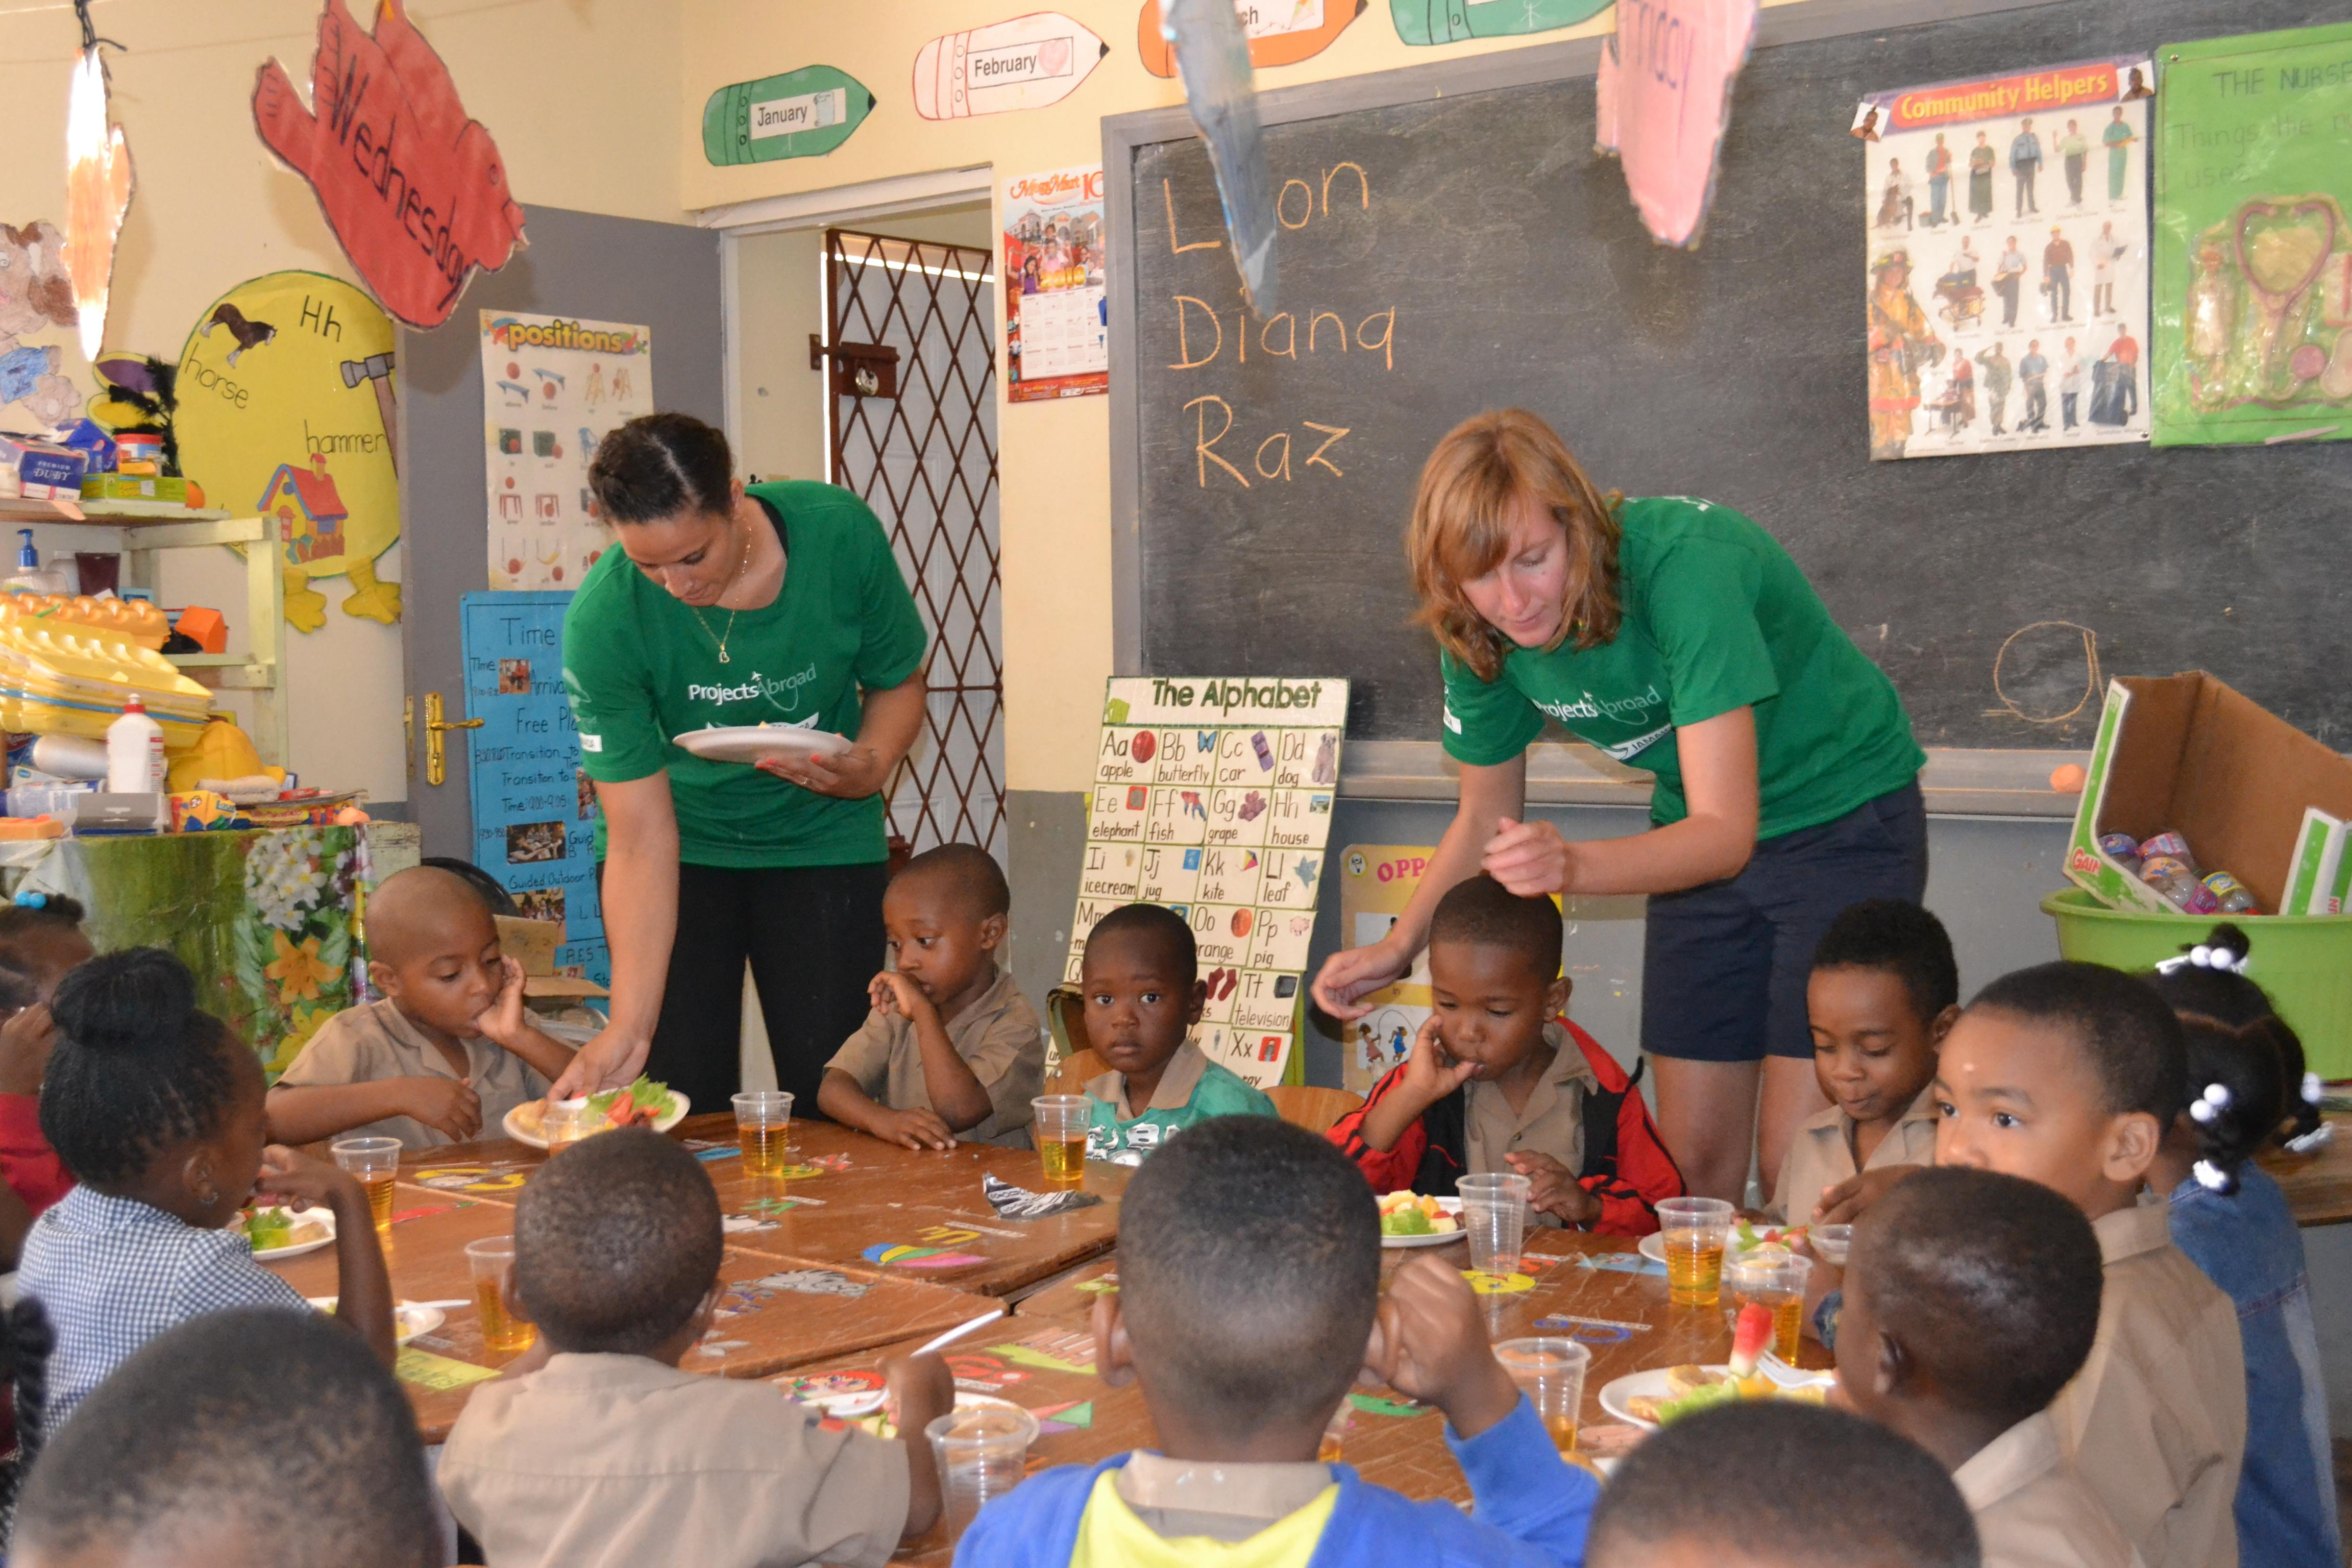 Two volunteers working with children in Jamaica serve breakfast to children at a kindergarten during a nutritional outreach.